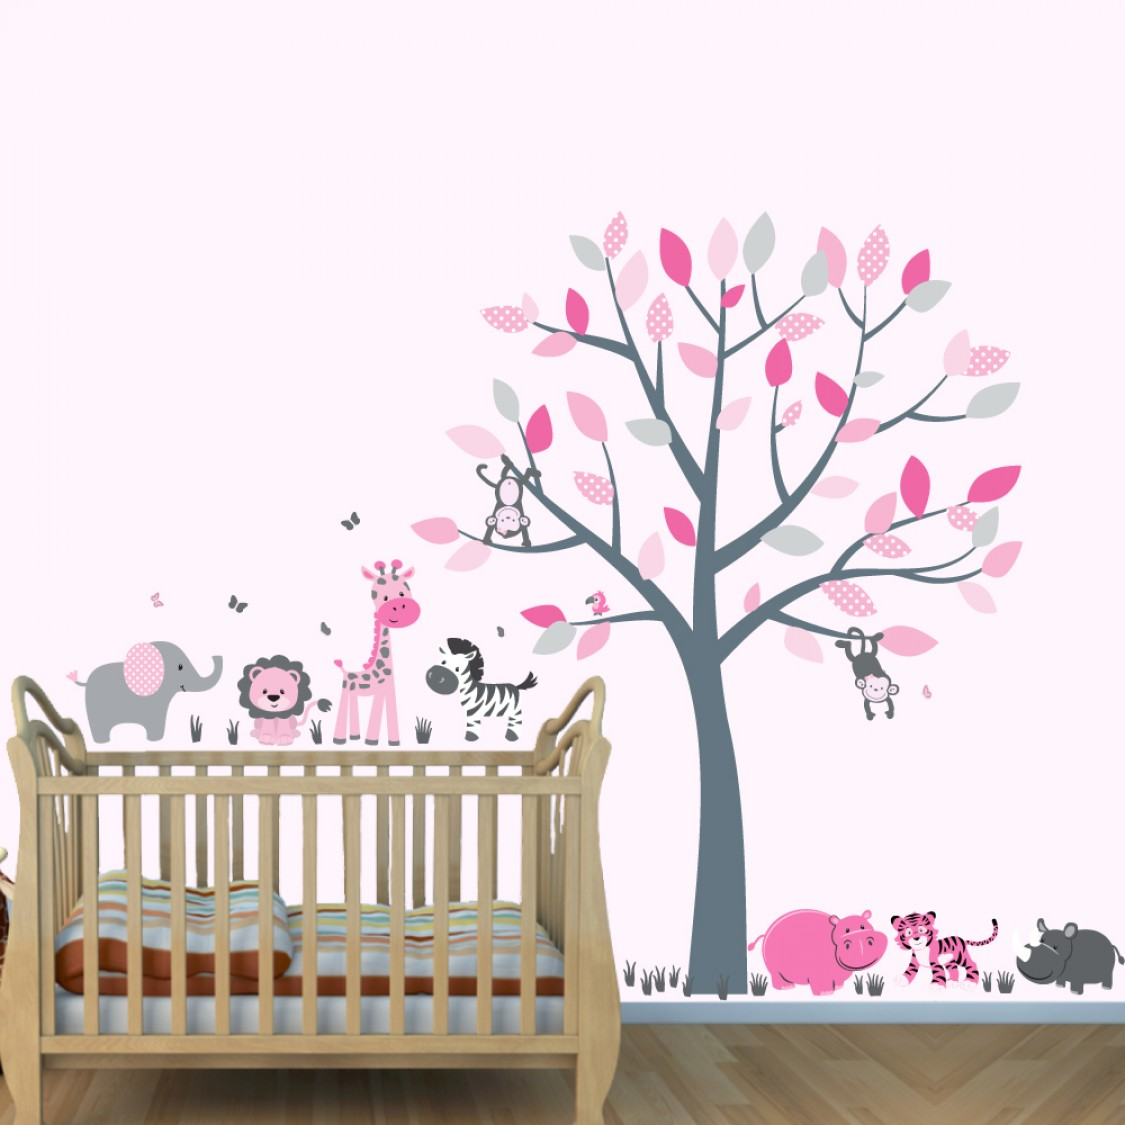 Pink and Gray Safari Decals With Elephant Wall Decor For Childrens Bedrooms